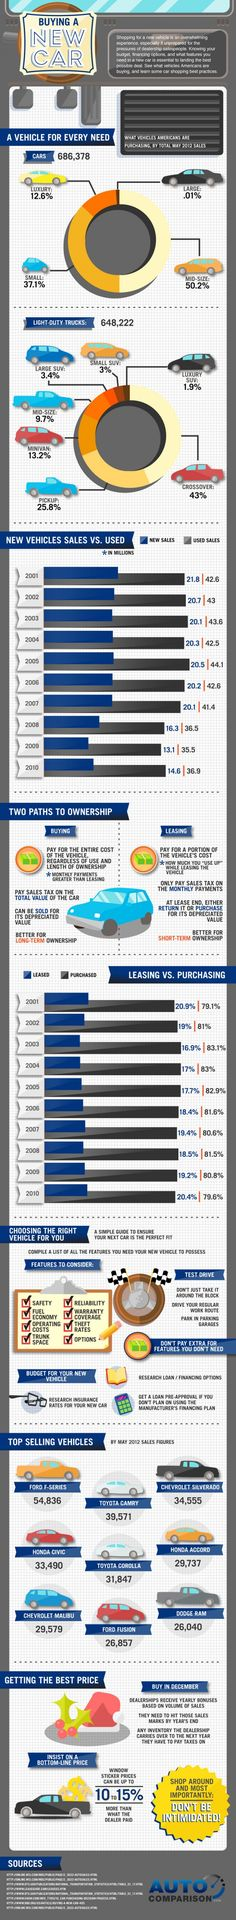 Buying a car can be a job within itself. With hours of research days of car hunting at dealerships and countless test-drives - it is one of the most important purchases next to buying a house. Today's infographic gives a unique view into the demogra Buying New Car, Car Buying Guide, Car Facts, Go Car, Car Purchase, Car Buyer, Car Advertising, Car Loans, Latest Cars